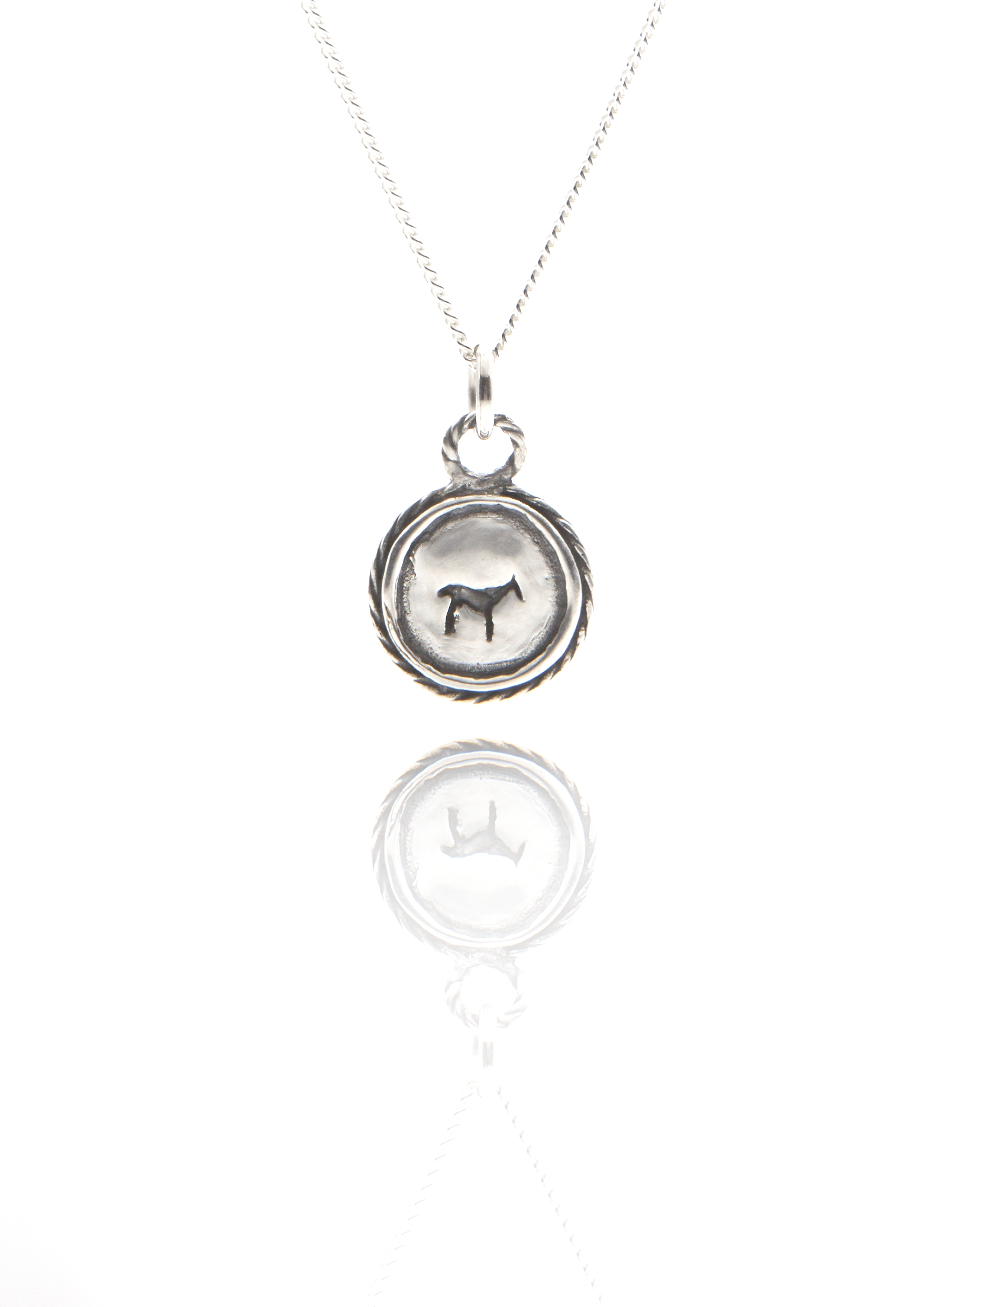 dd gff dolphin class we top necklace hbt silver cubic cnbthf animal pendant sterling xbth zirconia cnd pandora